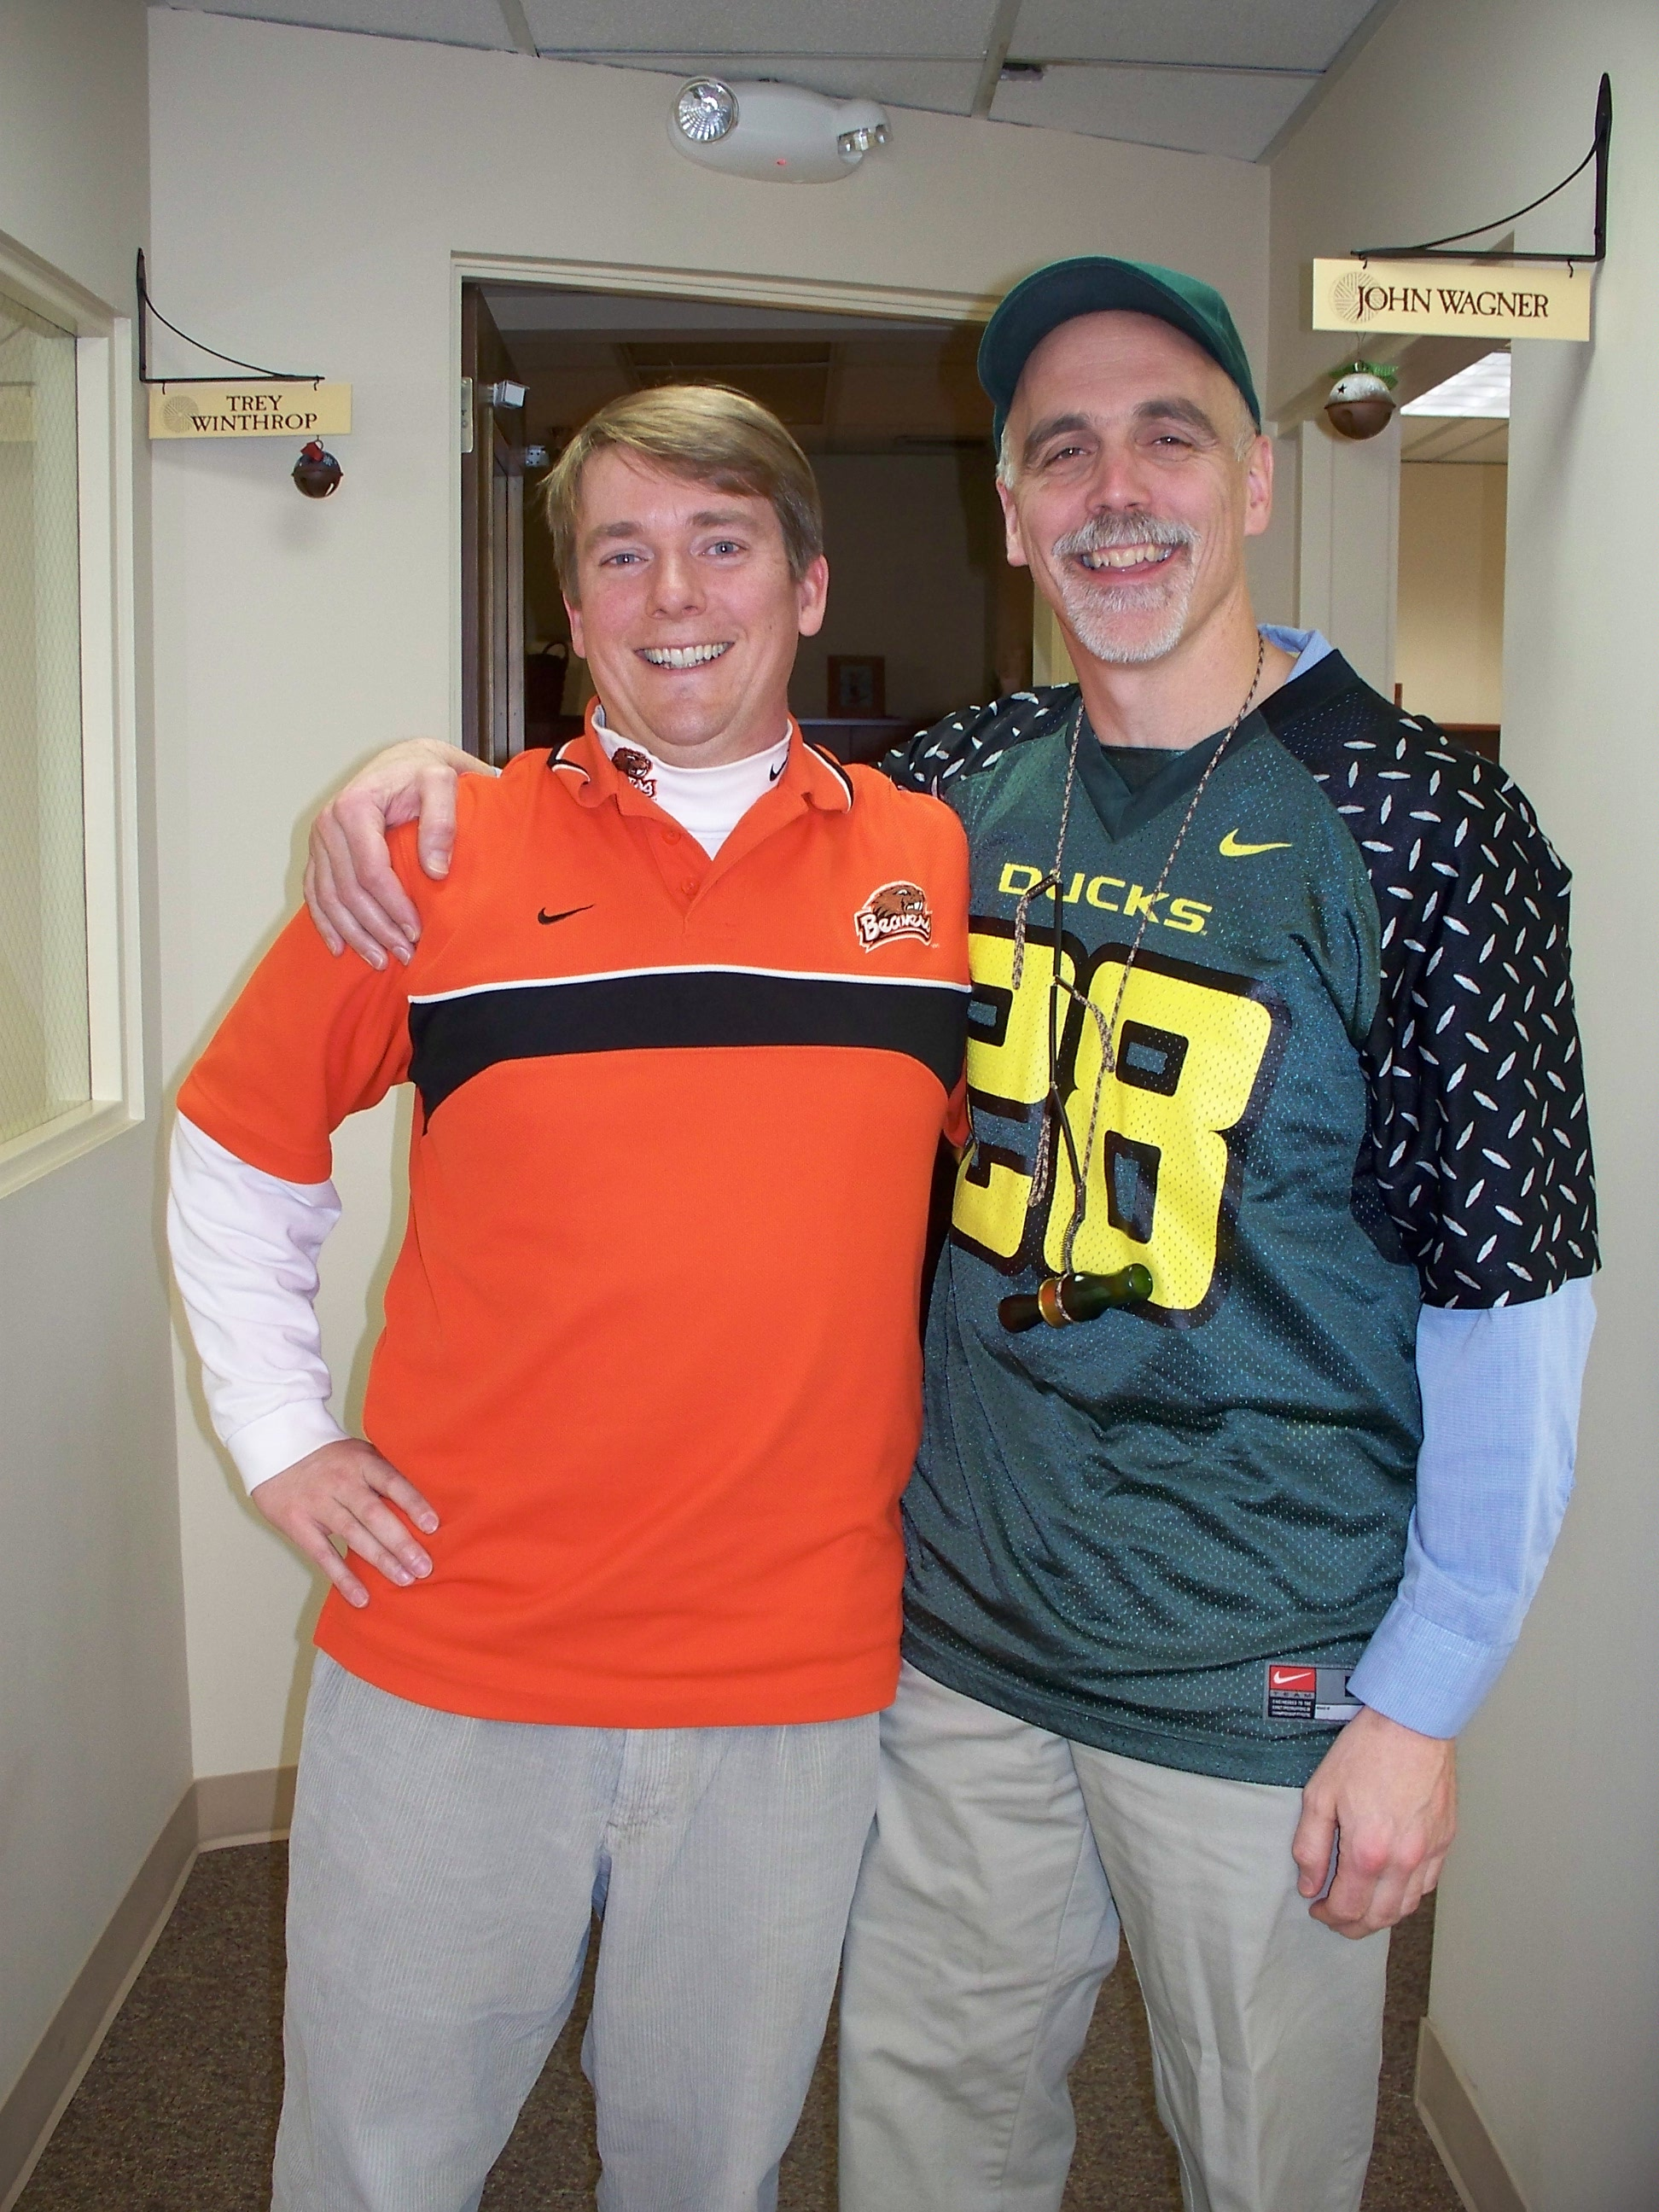 Trey and Dave may be on the same cyclocross team, but they have different tastes when it comes to football champs.